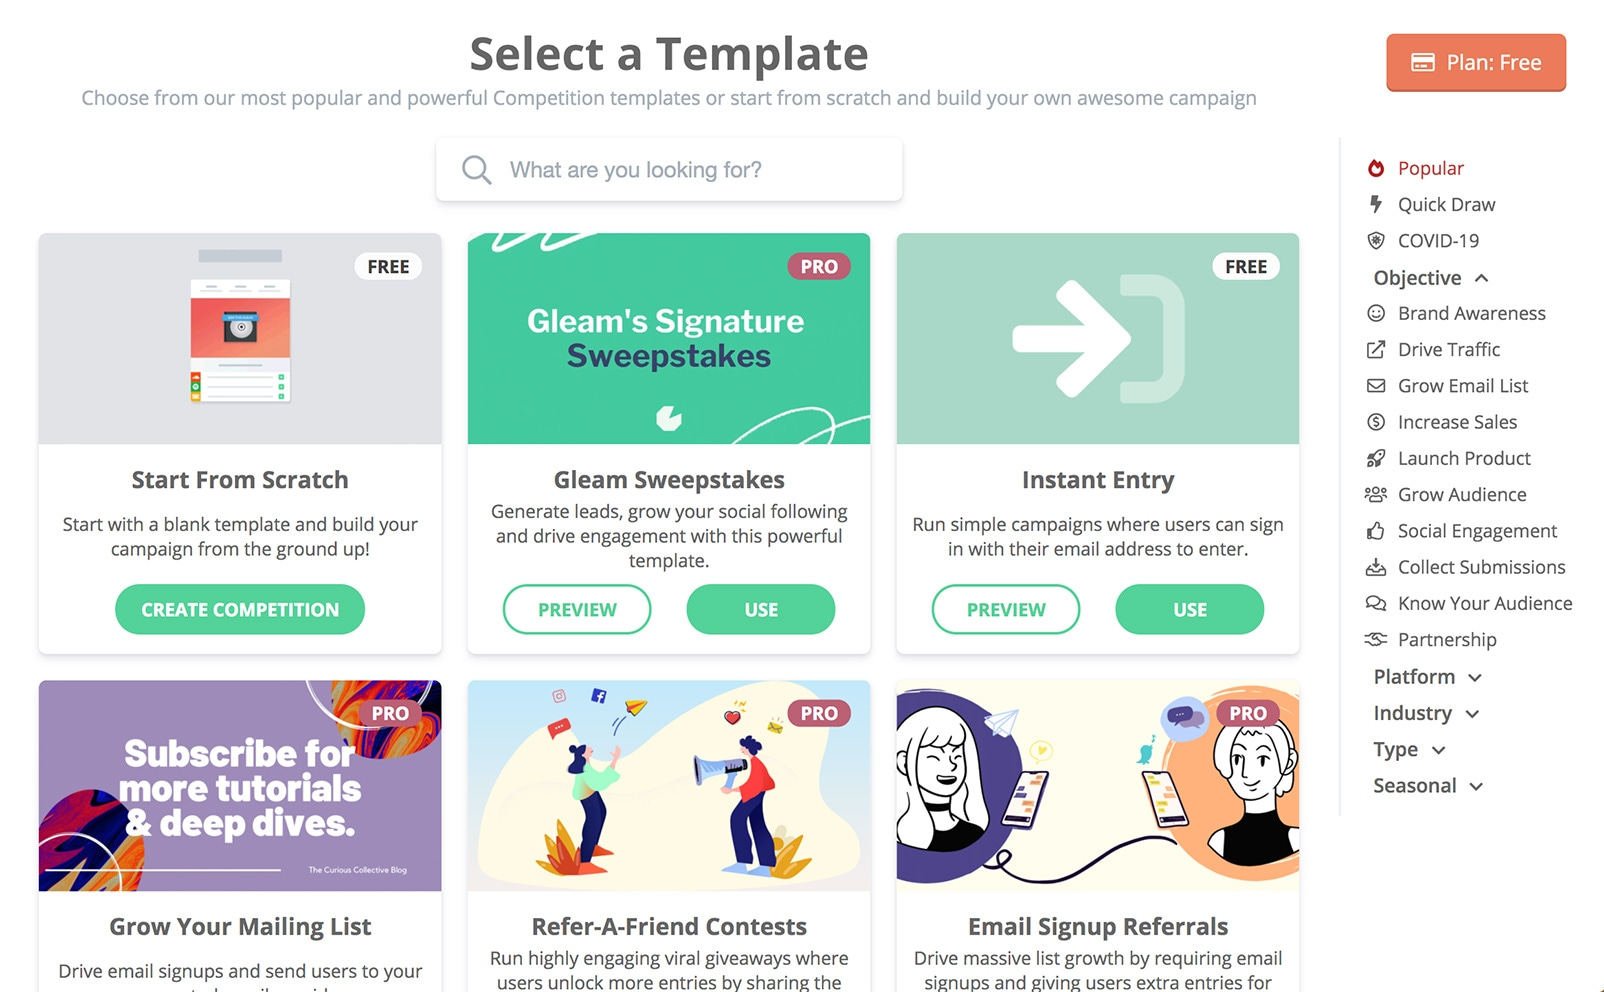 Gleam's Competition Templates Library